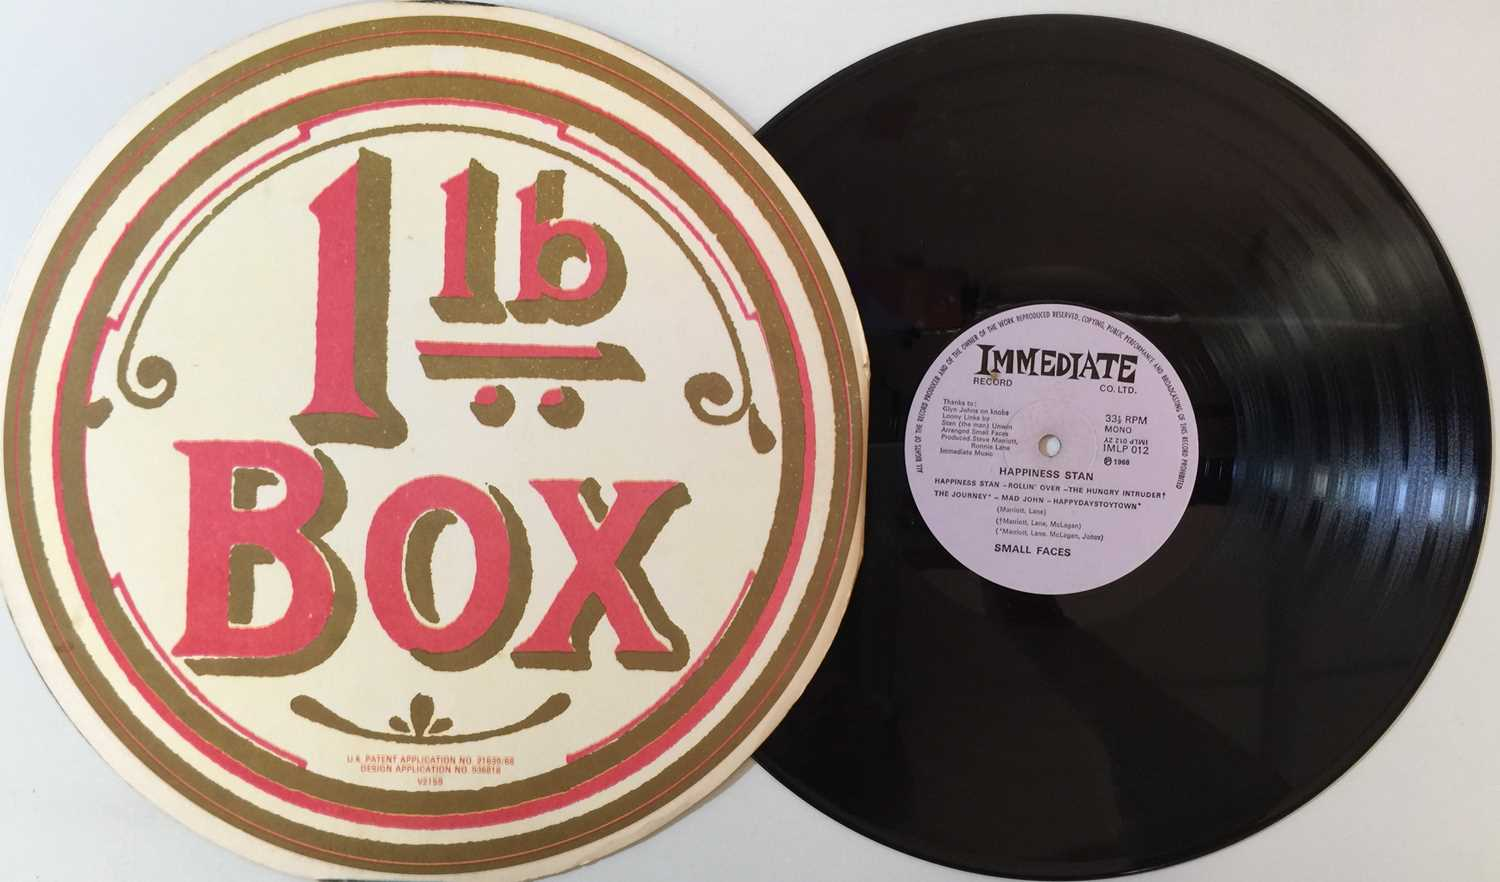 SMALL FACES - ORIGINAL UK LPs - Image 4 of 4